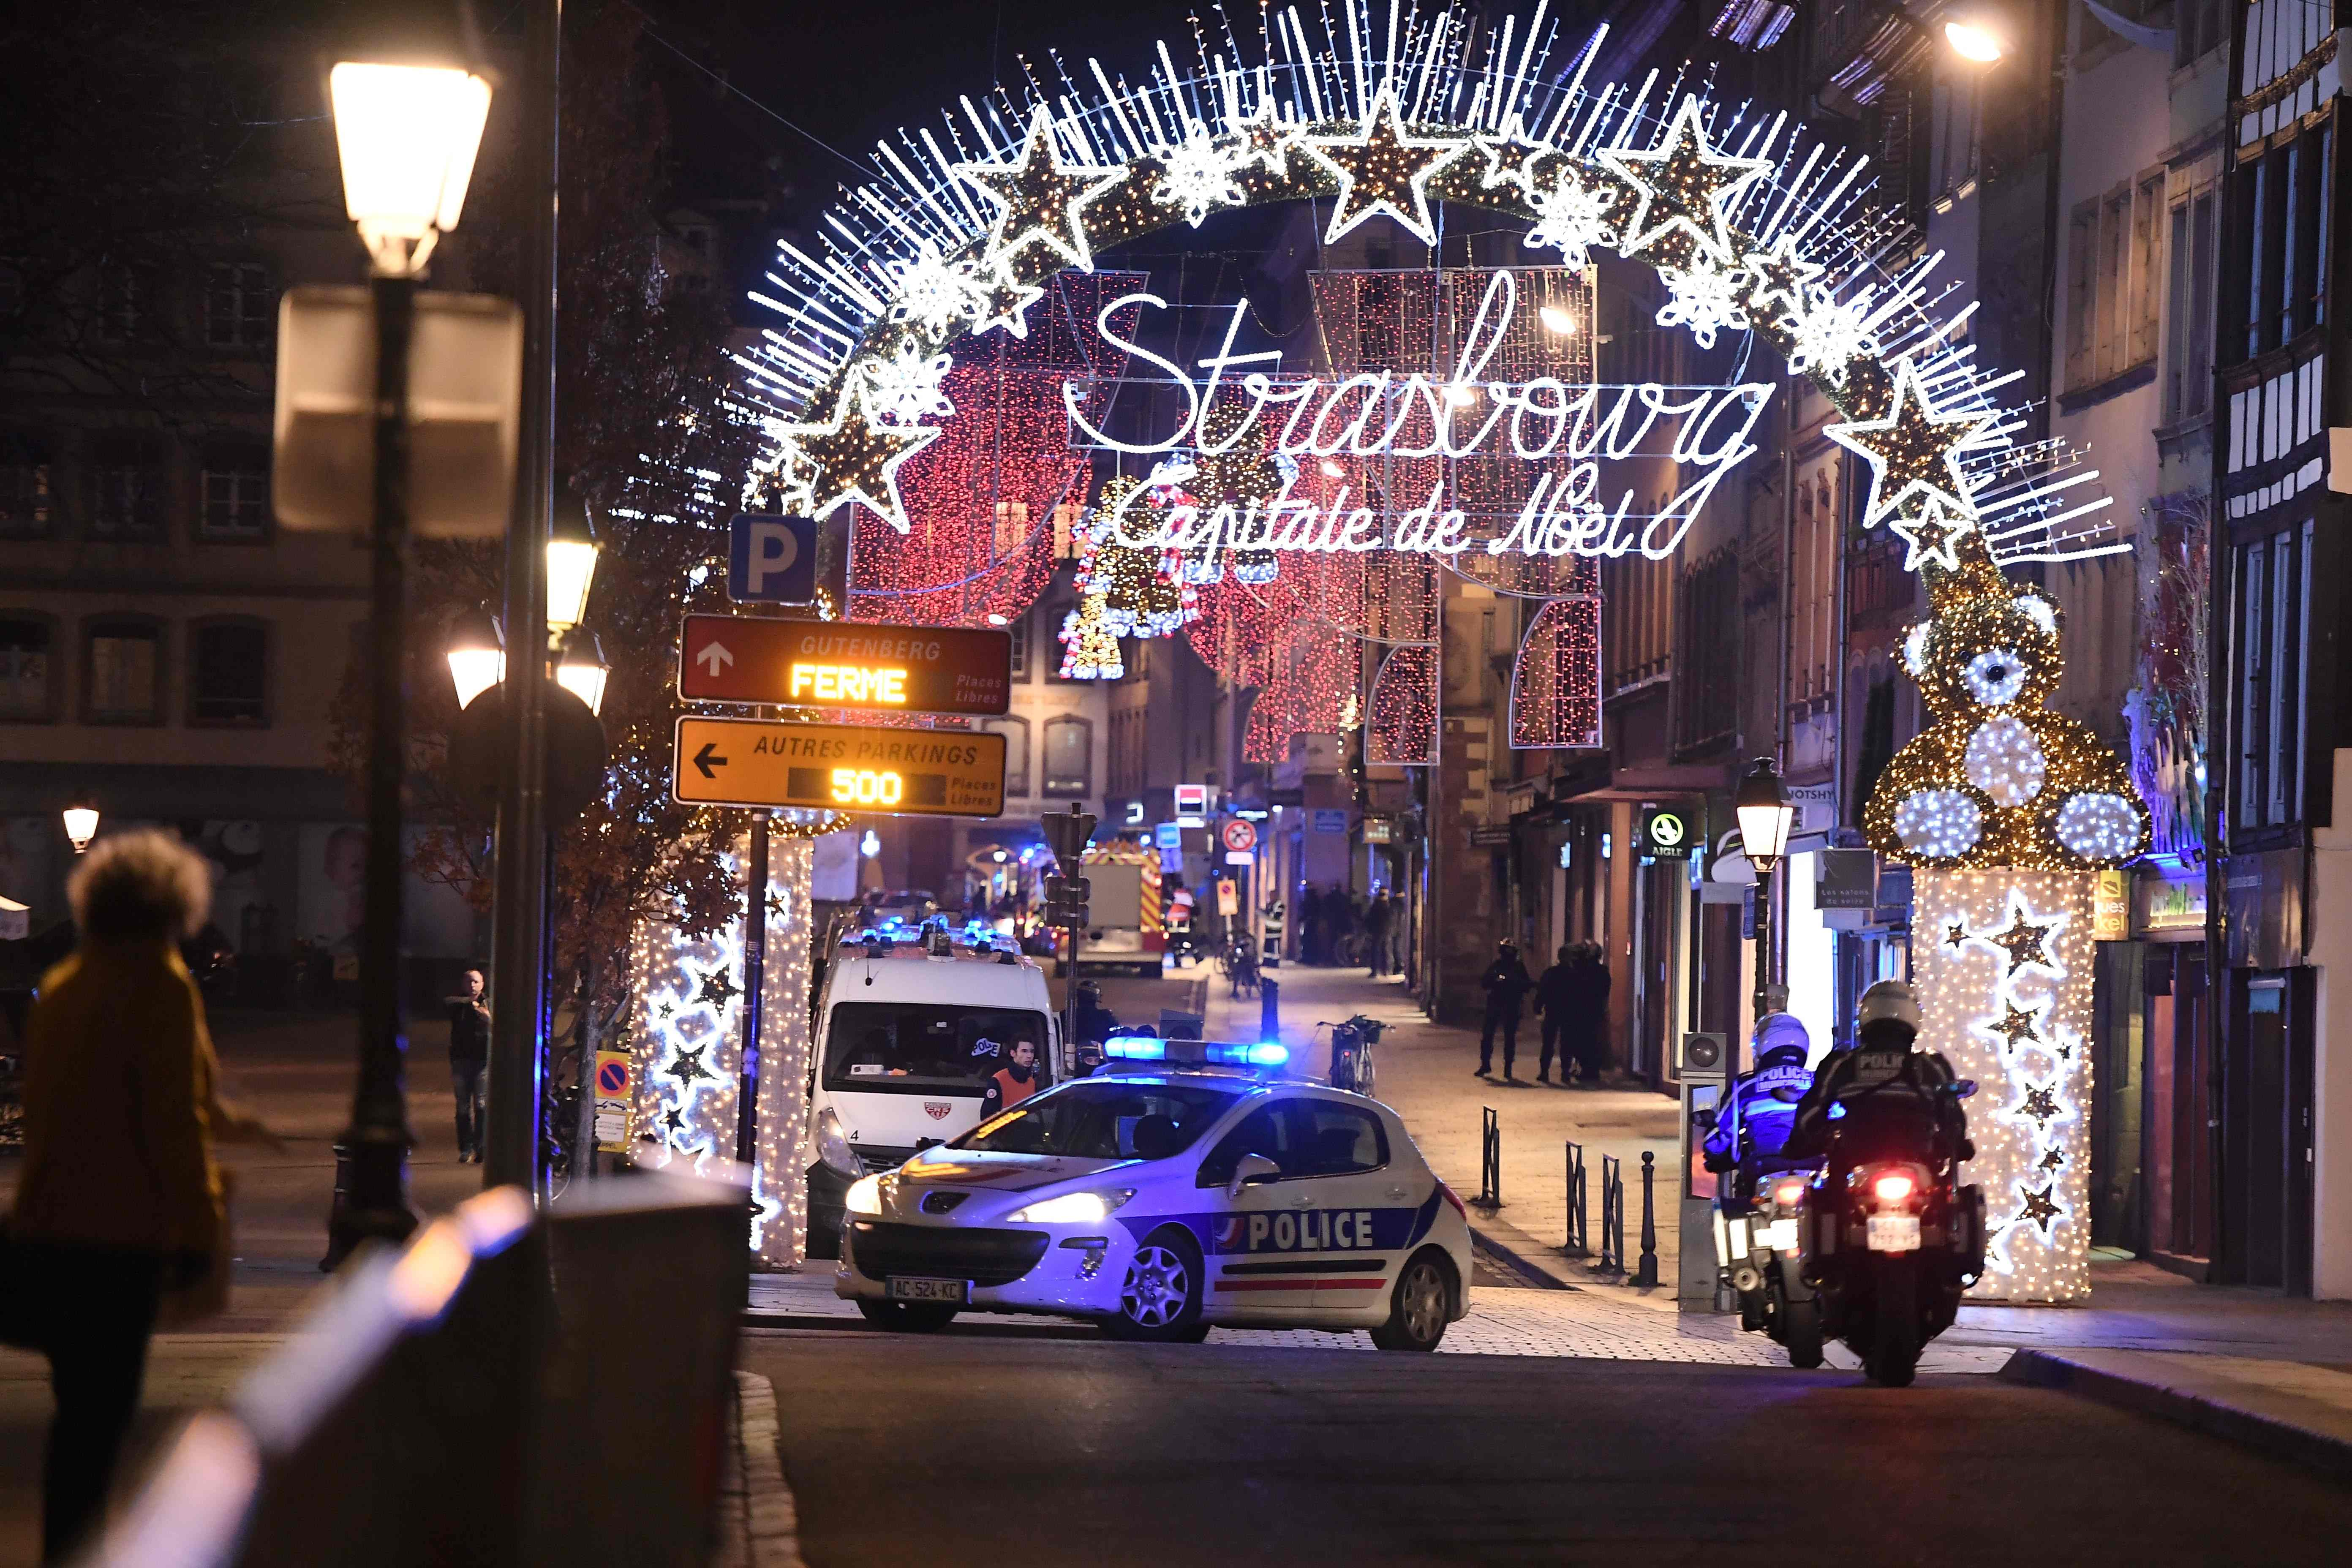 At least three dead, 11 wounded in terror attack near famed Christmas market in France